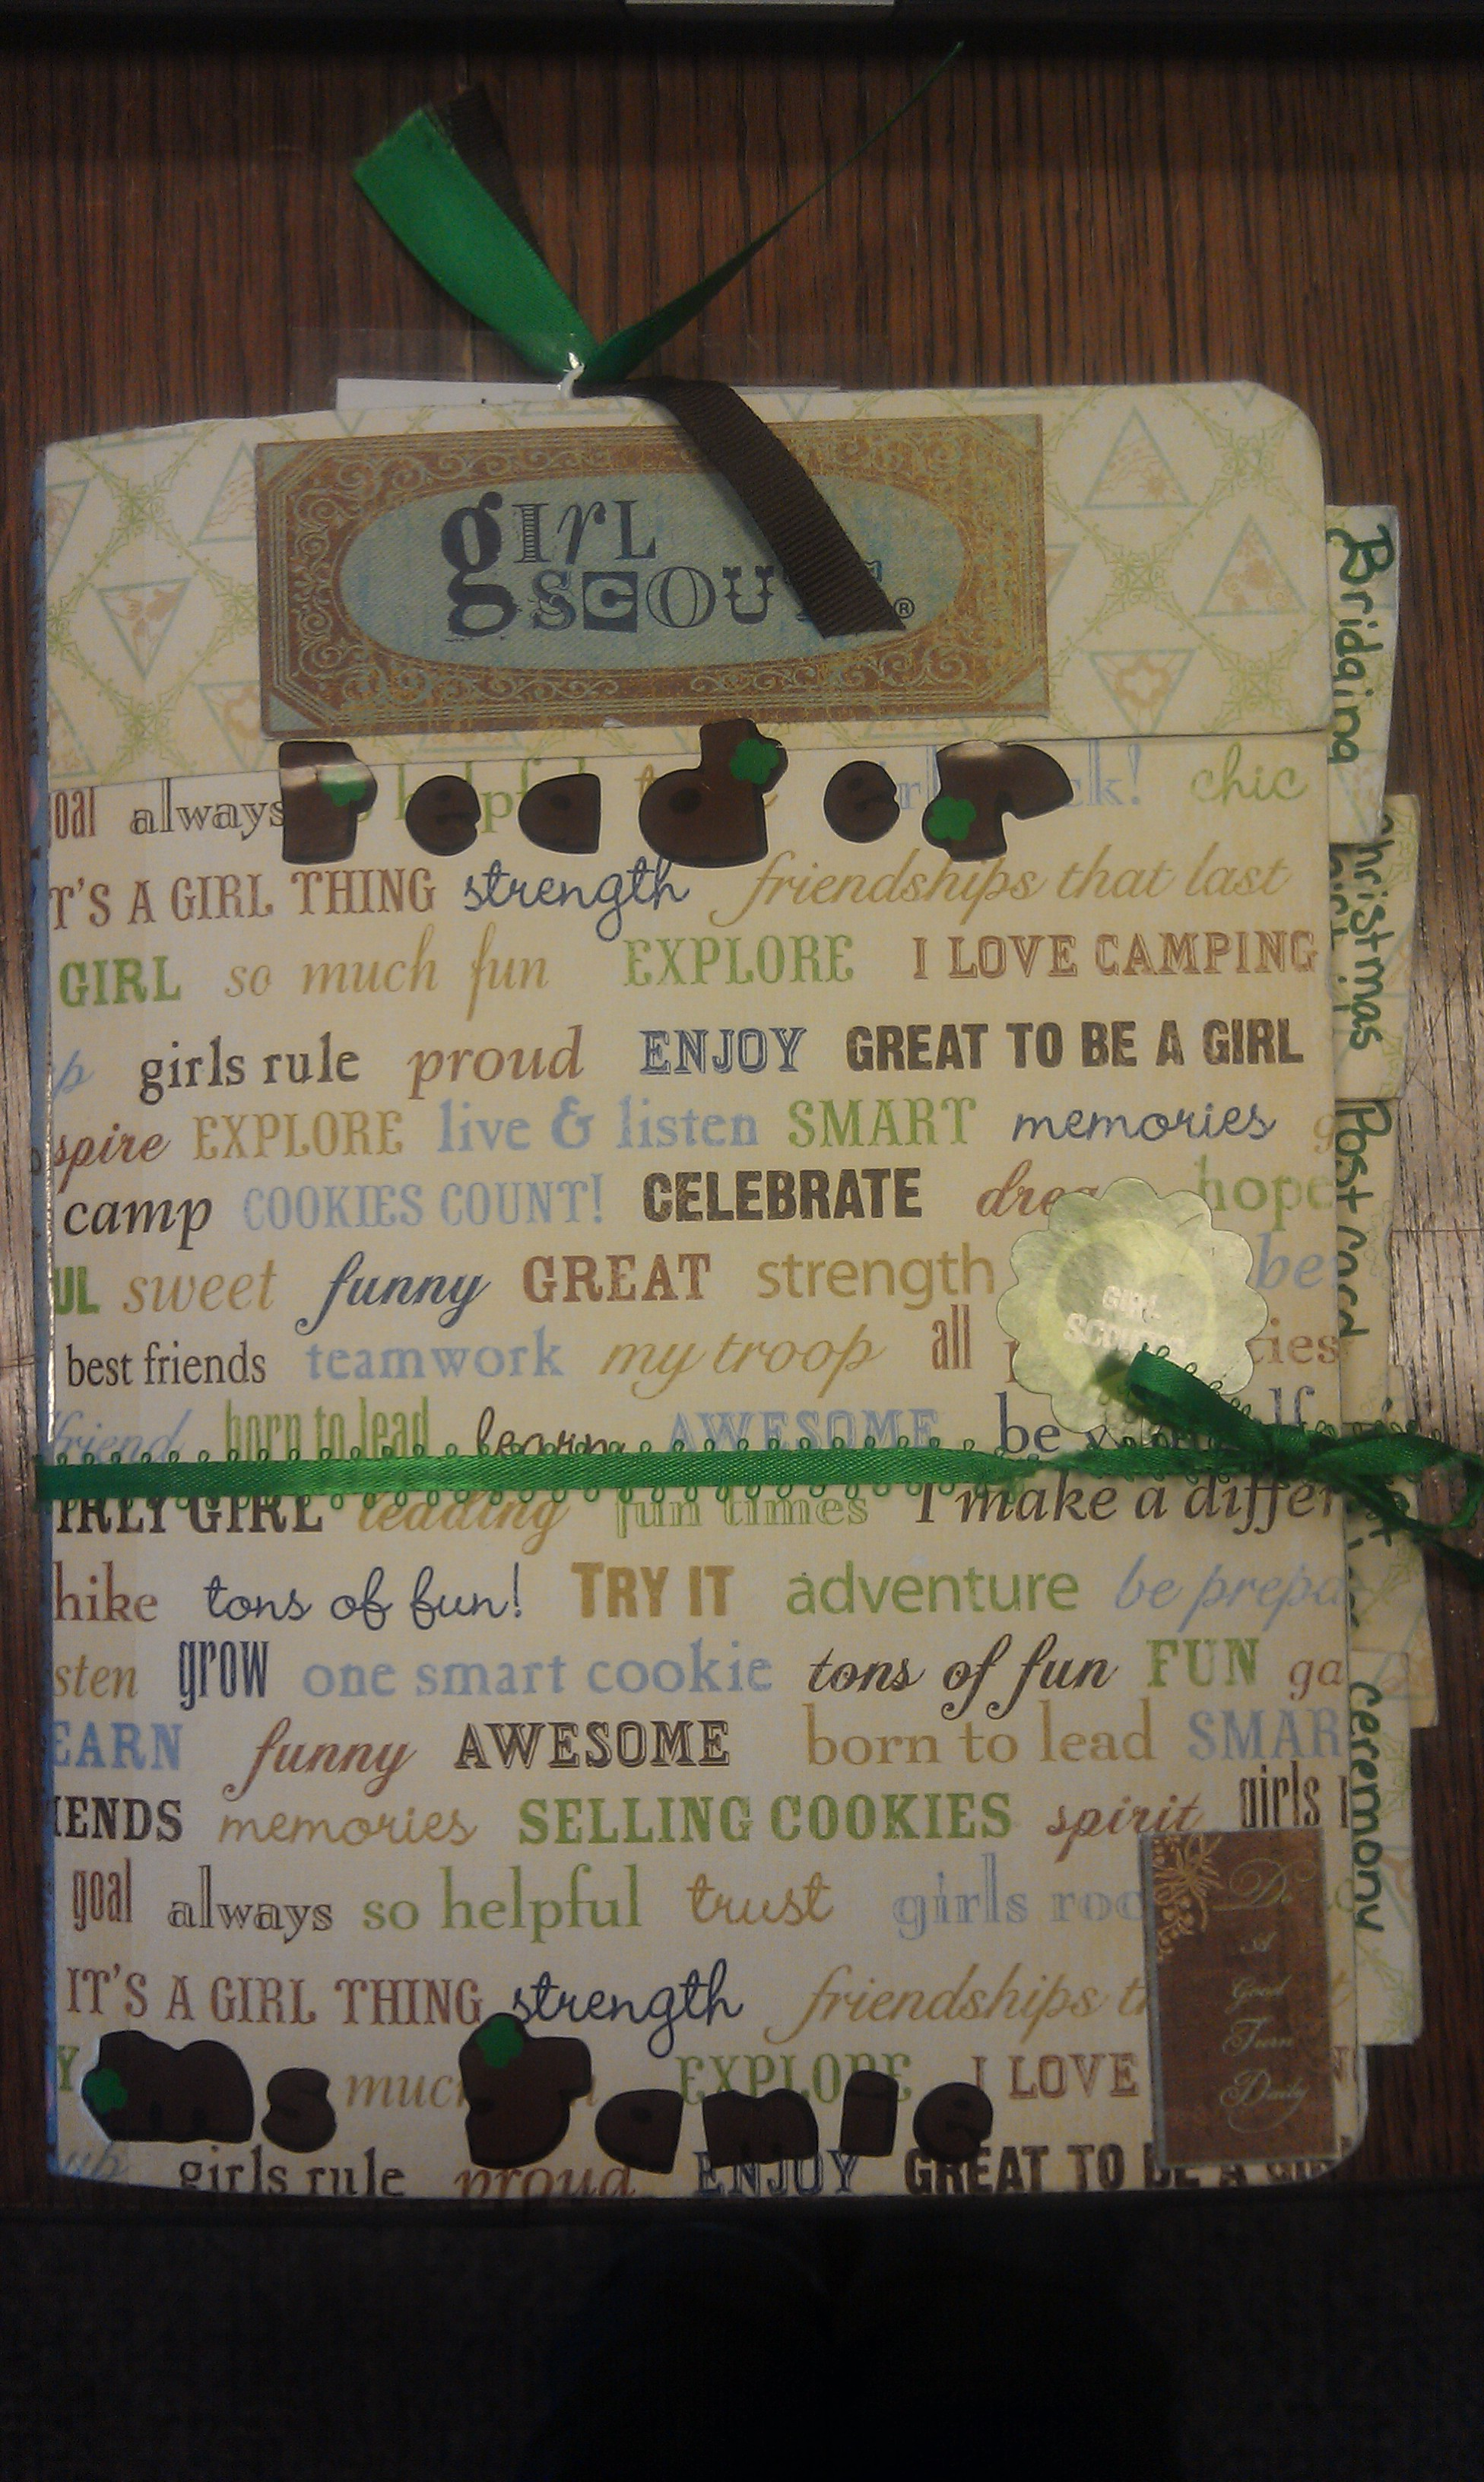 Girl scout scrapbook ideas - Just Like The Others It Just Takes Some Scrapbook Paper And A Composition Book I Have Even Thought About Having My Troop Make Smash Books This Way